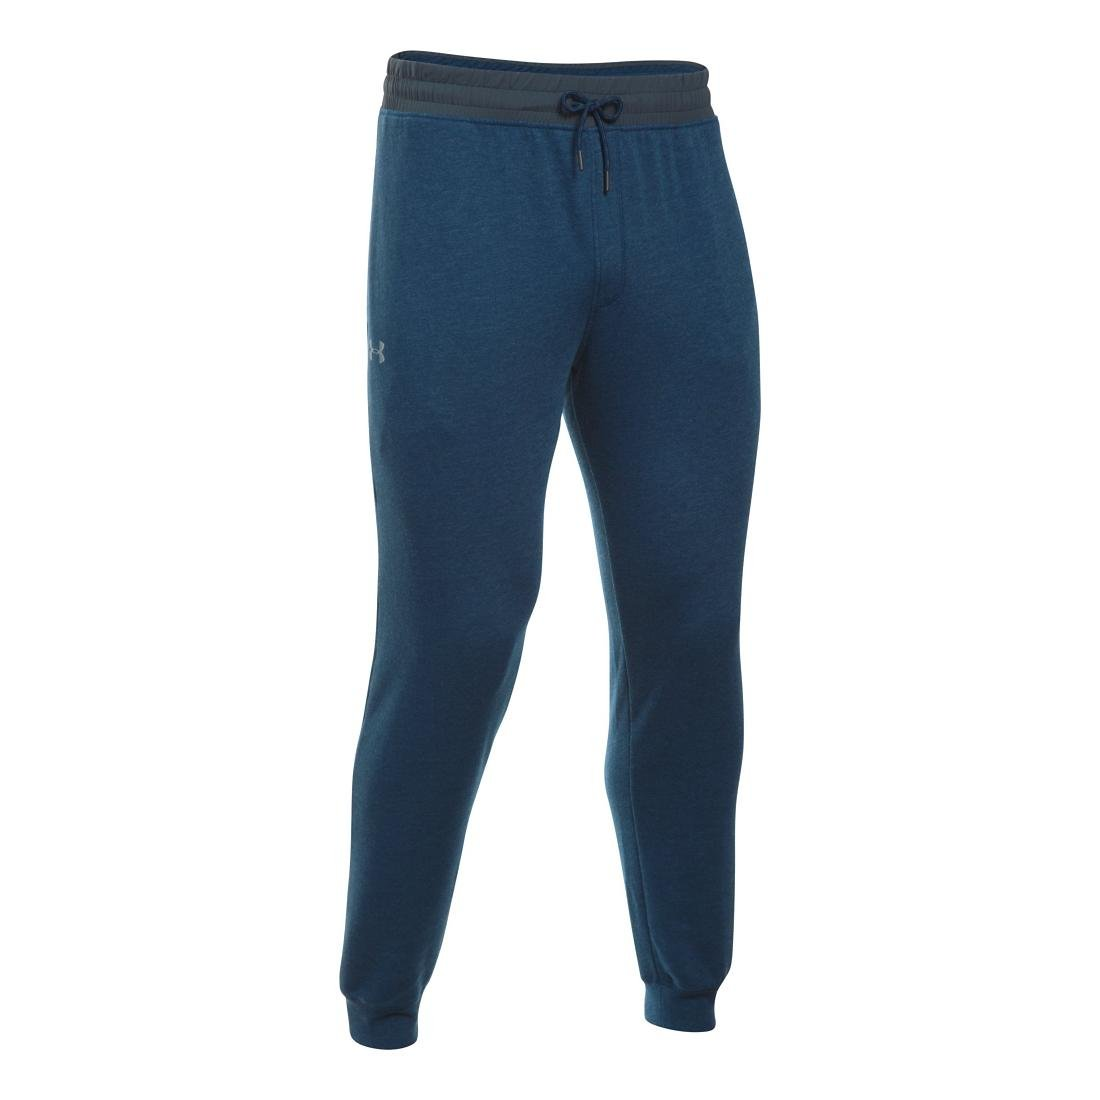 Under Armour Unisex Oberbekleidung Oberbekleidung Tri Pants Blend Fleece Jogger Pants Tri 42c110